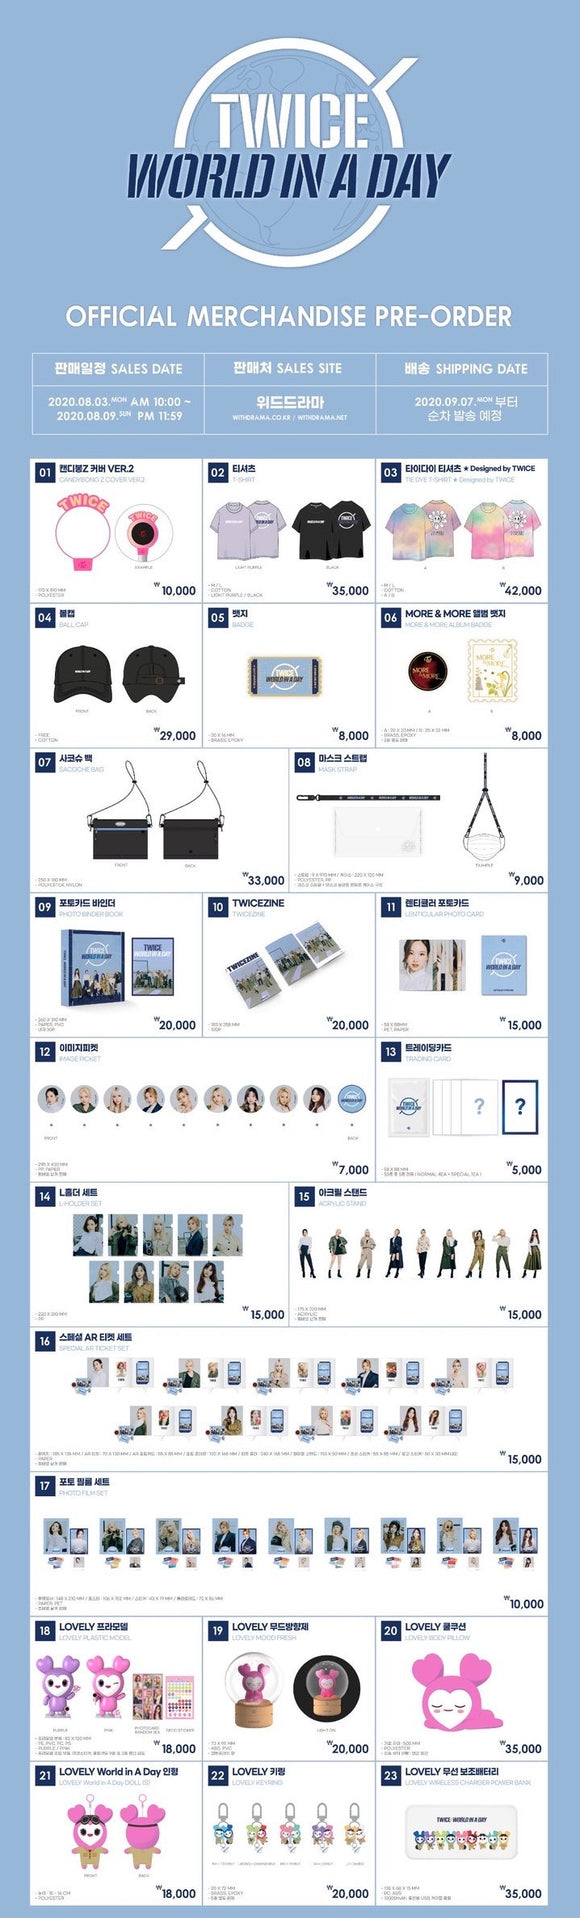 TWICE ONLINE CONCERT Beyond LIVE - TWICE : World in A Day OFFICIAL MERCHANDISE